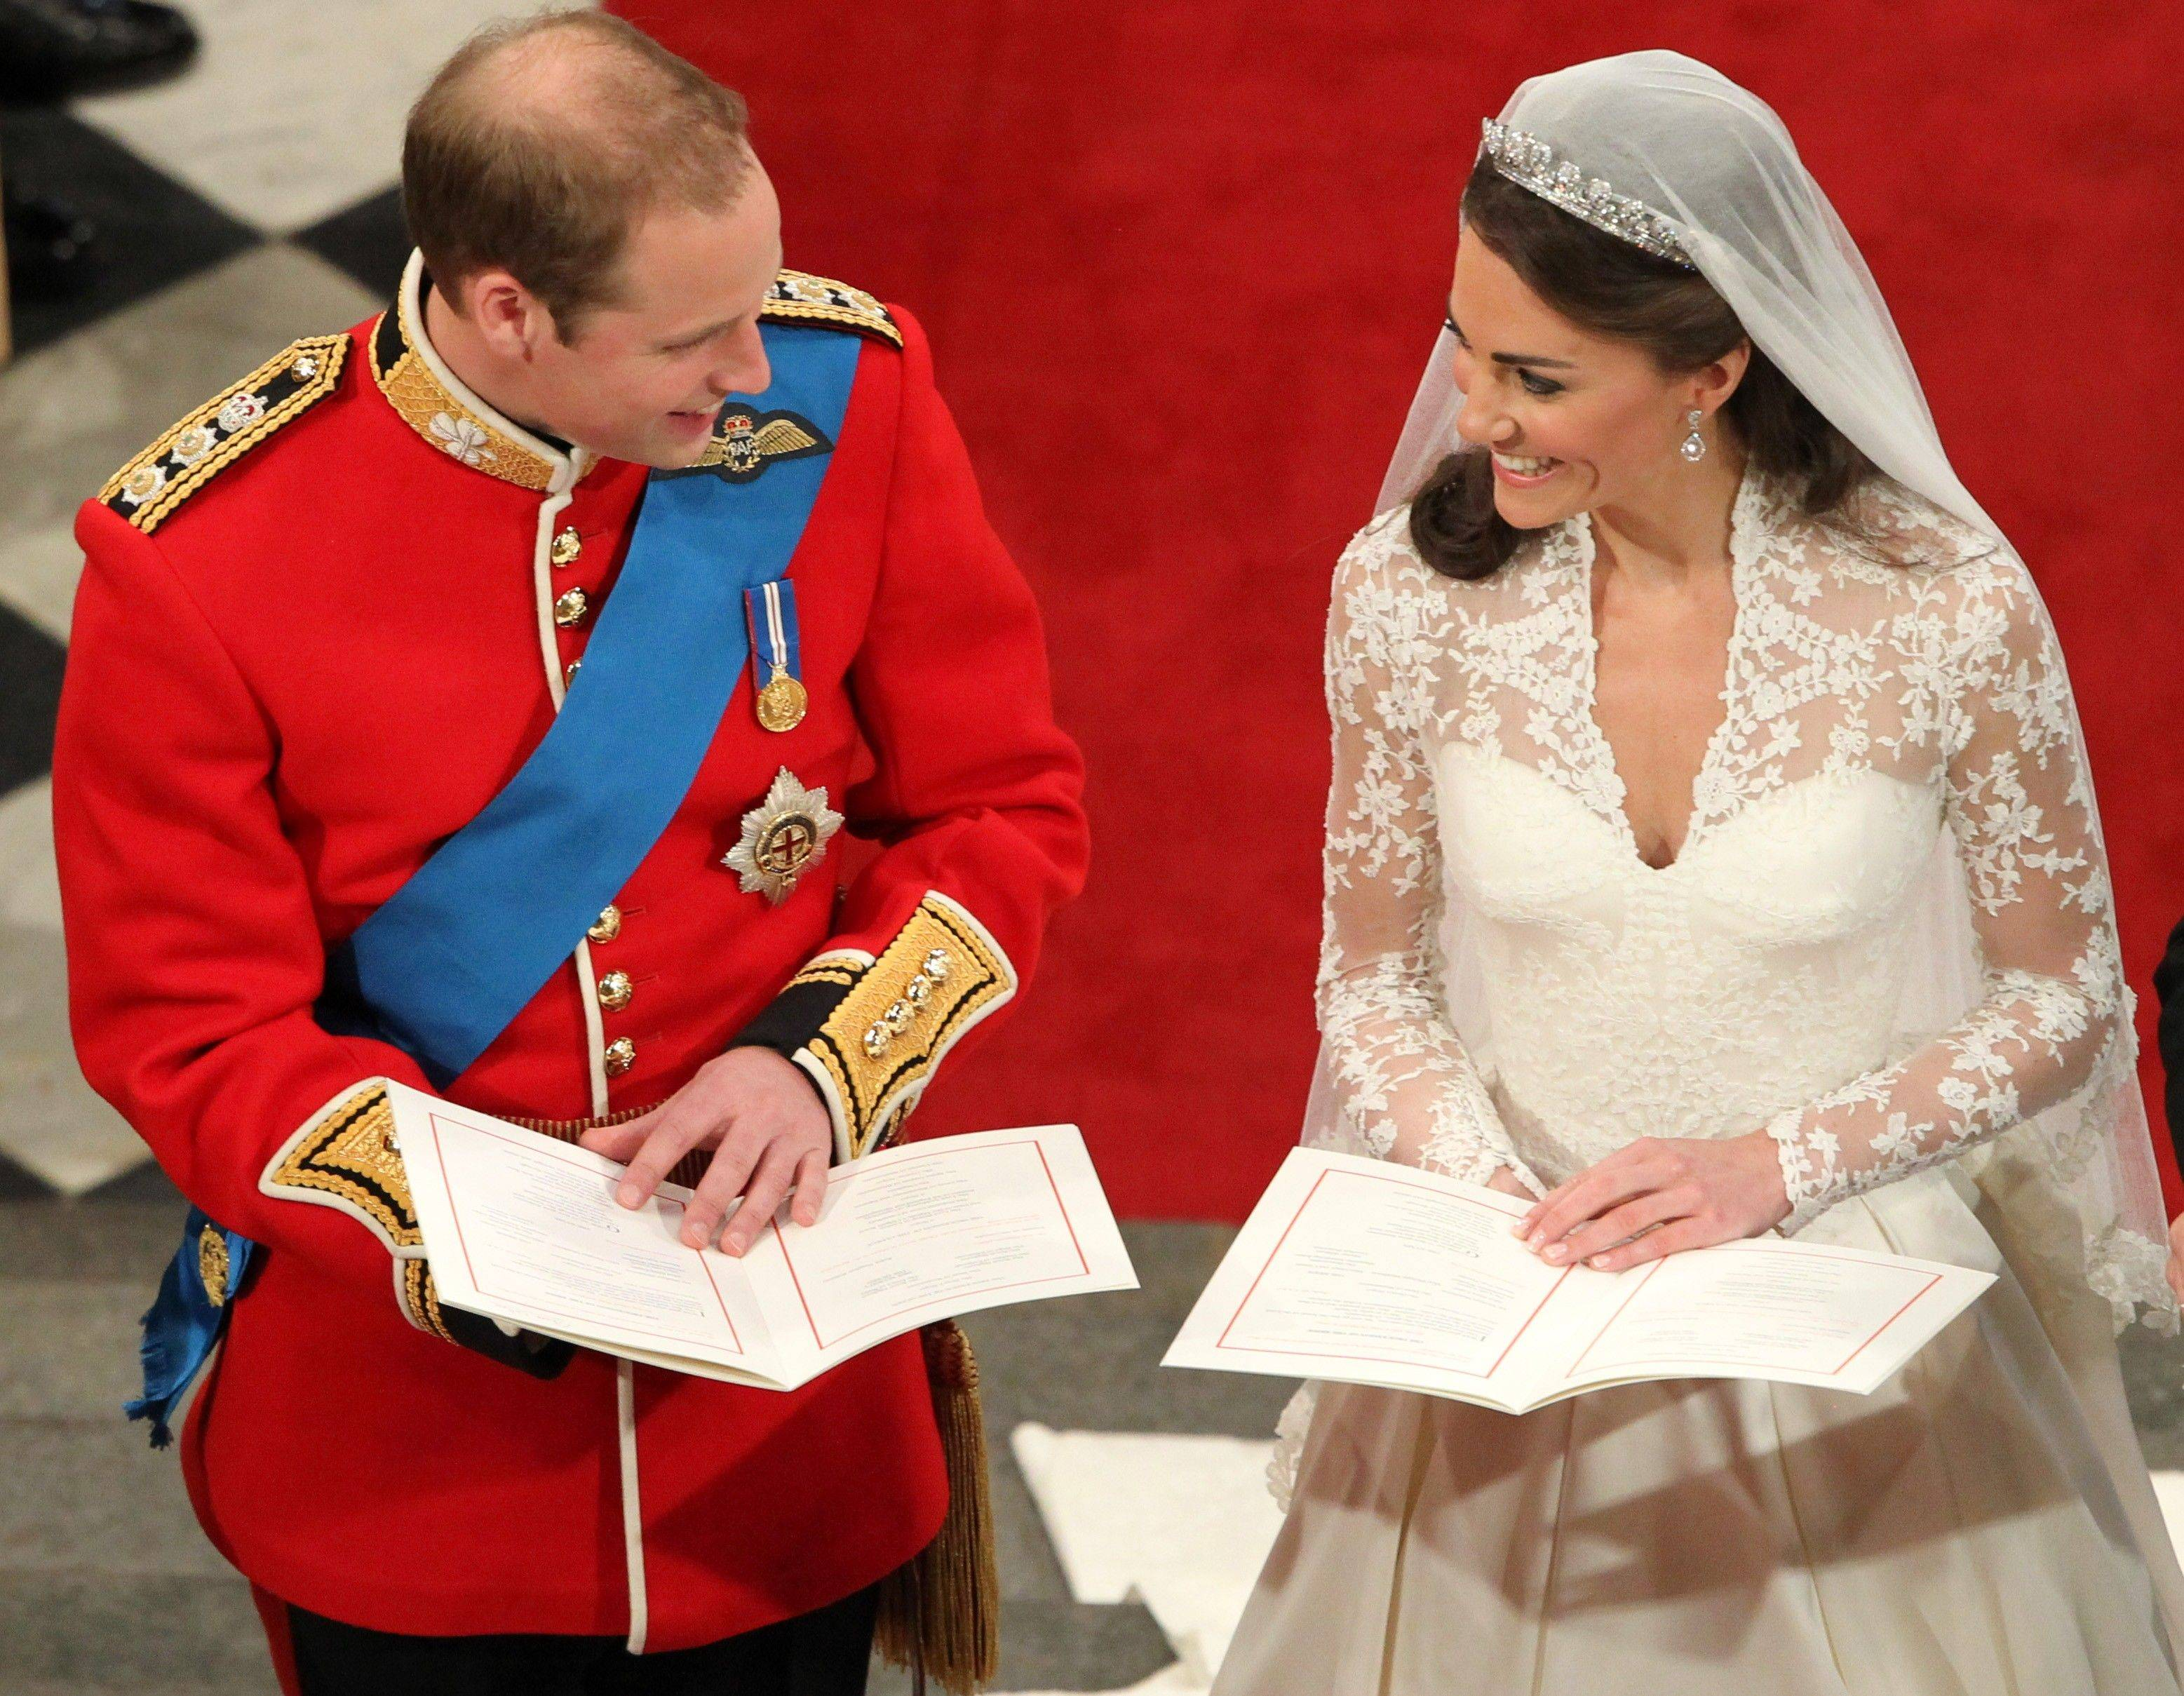 Britain's Prince William and his bride Kate Middleton during their wedding service at Westminster Abbey, London, Friday April 29, 2011.